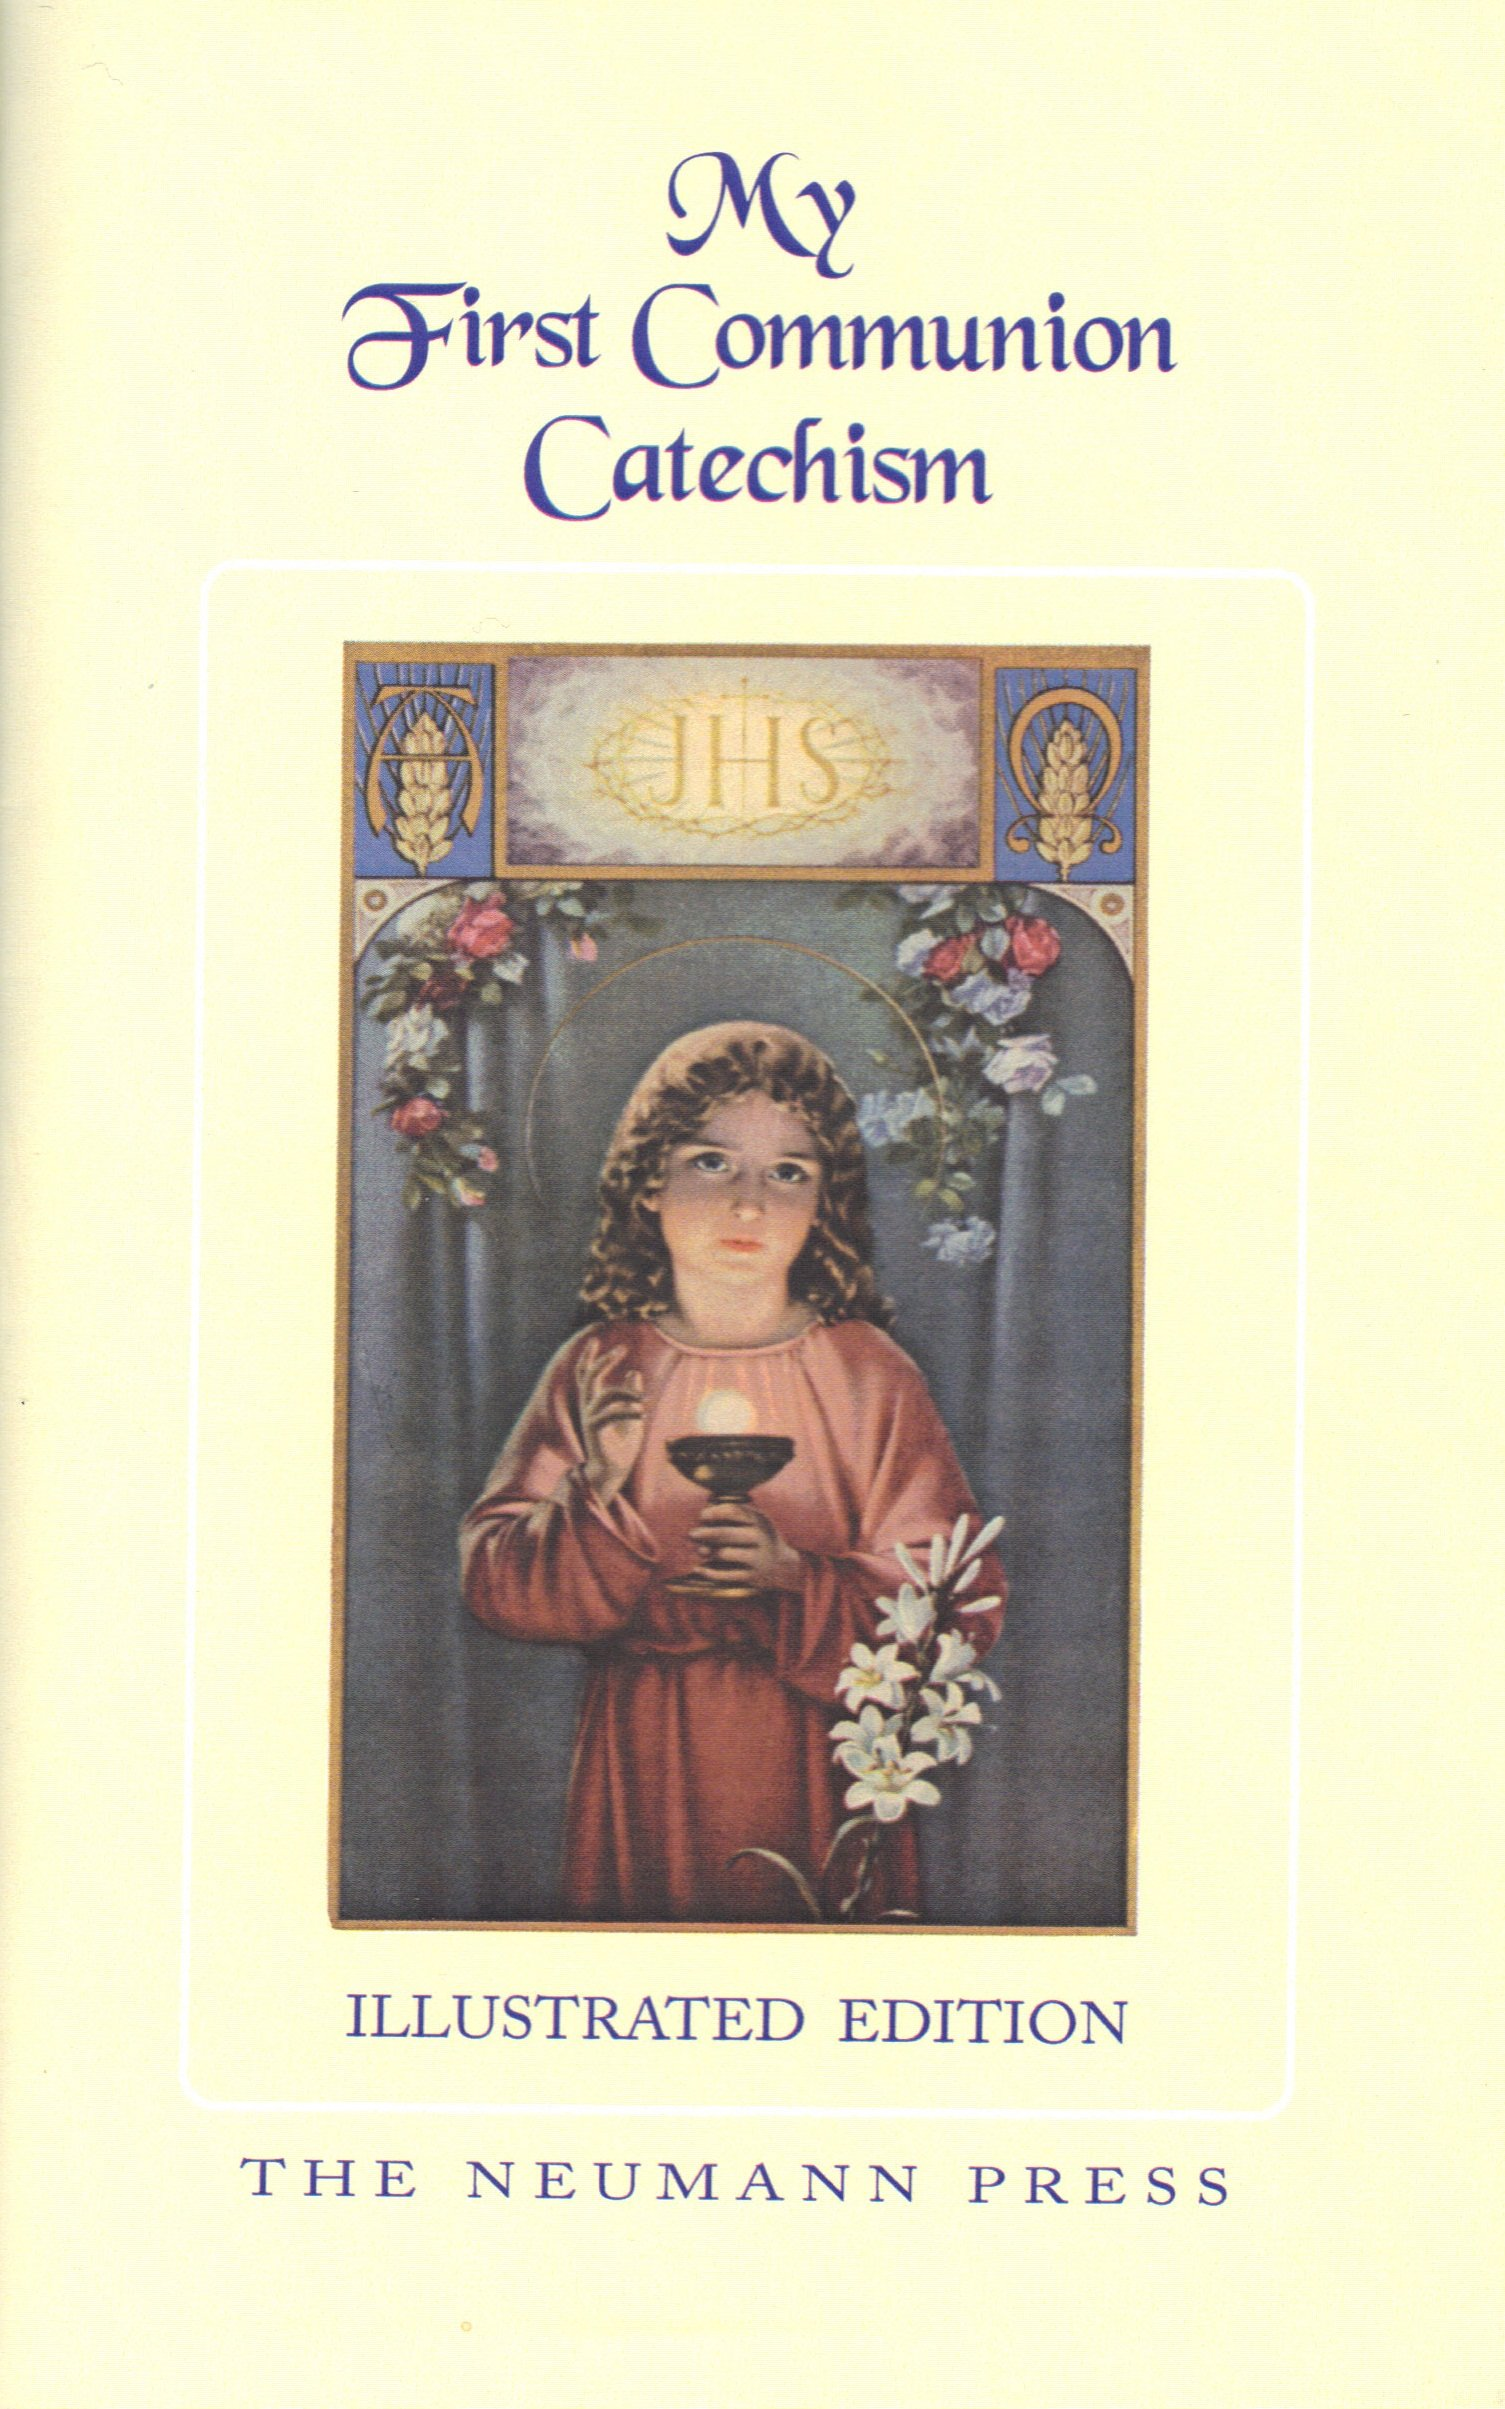 My First Communion Catechism